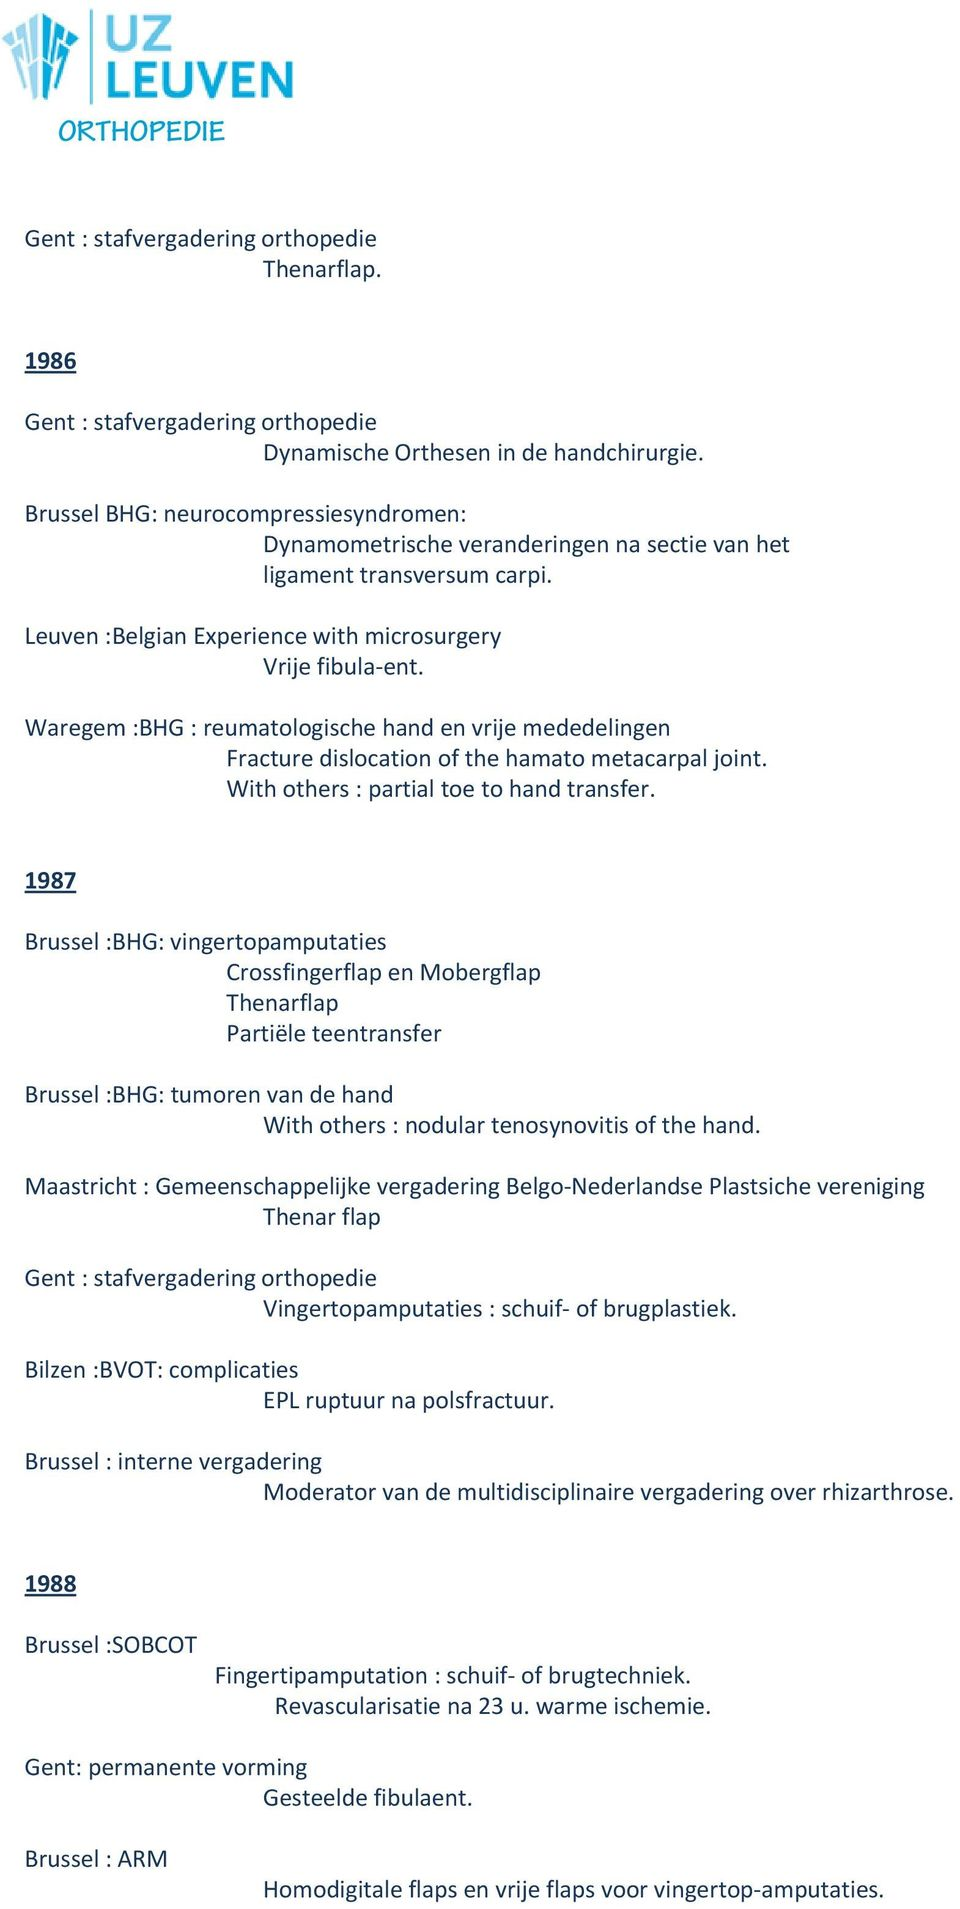 Waregem :BHG : reumatologische hand en vrije mededelingen Fracture dislocation of the hamato metacarpal joint. With others : partial toe to hand transfer.